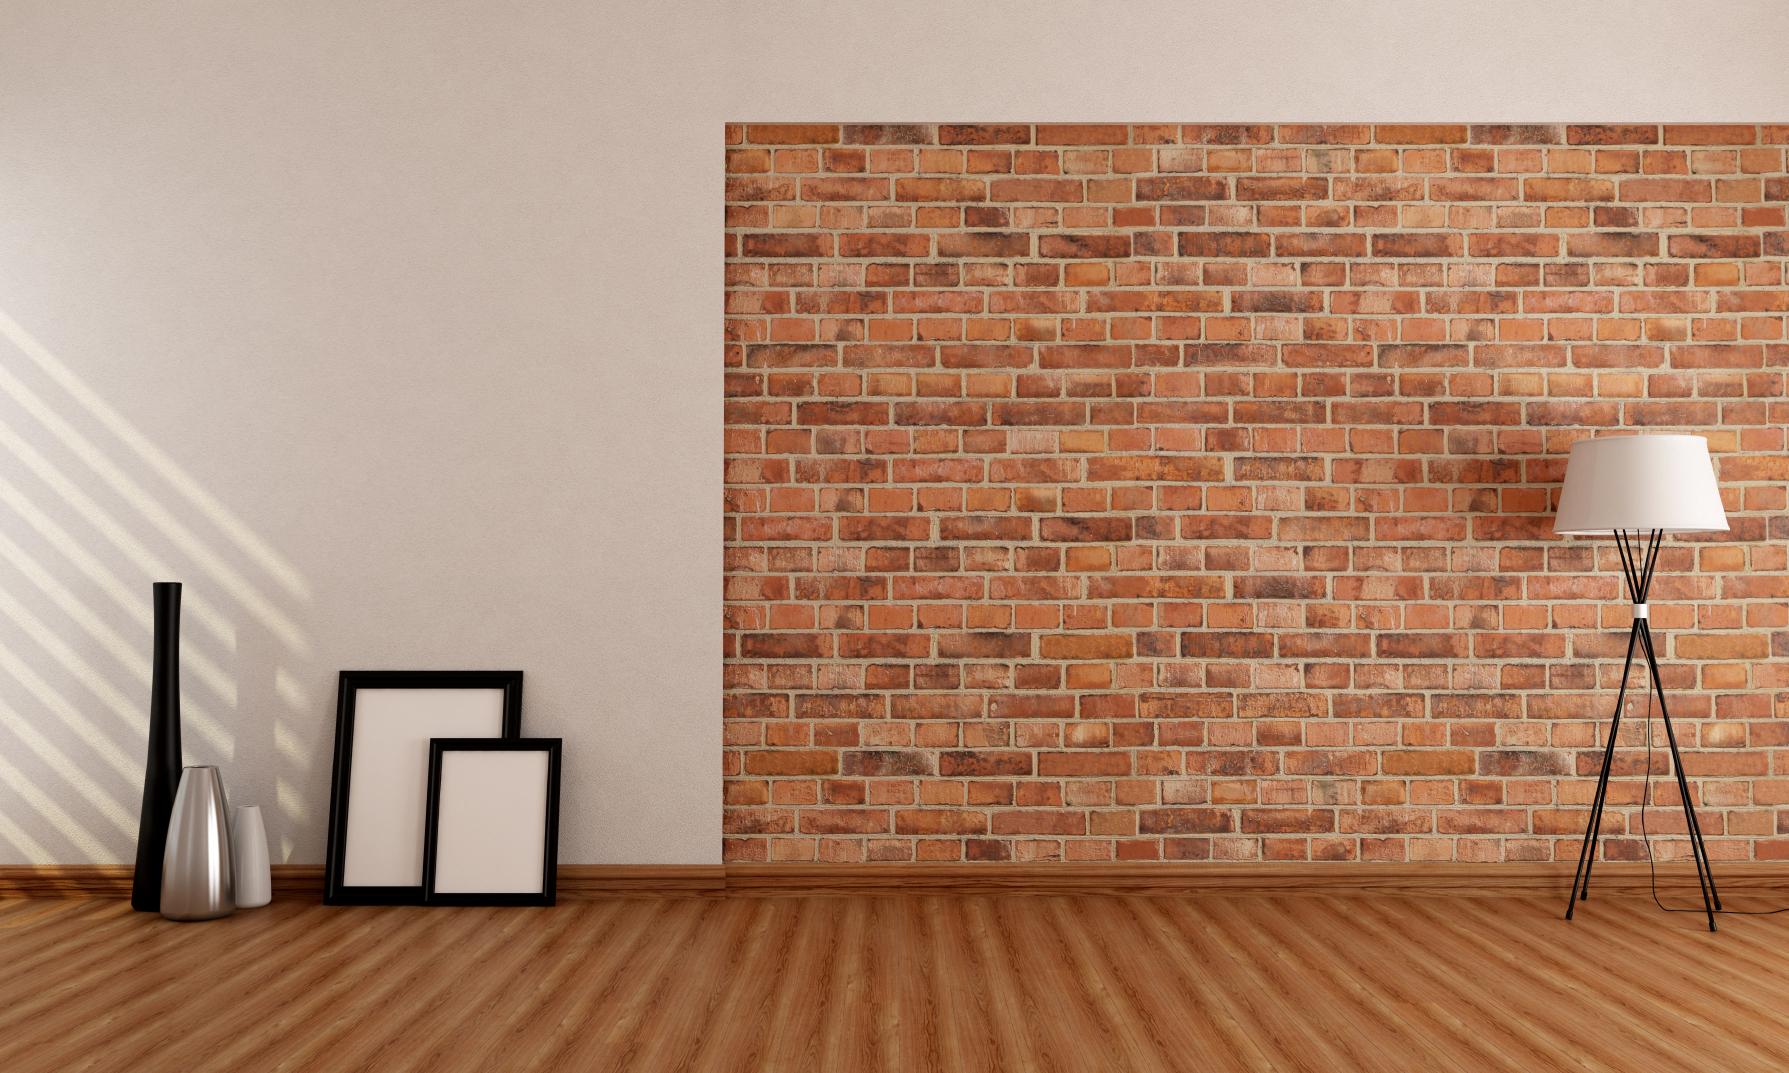 How Much Should It Cost To Install A Brick Wall